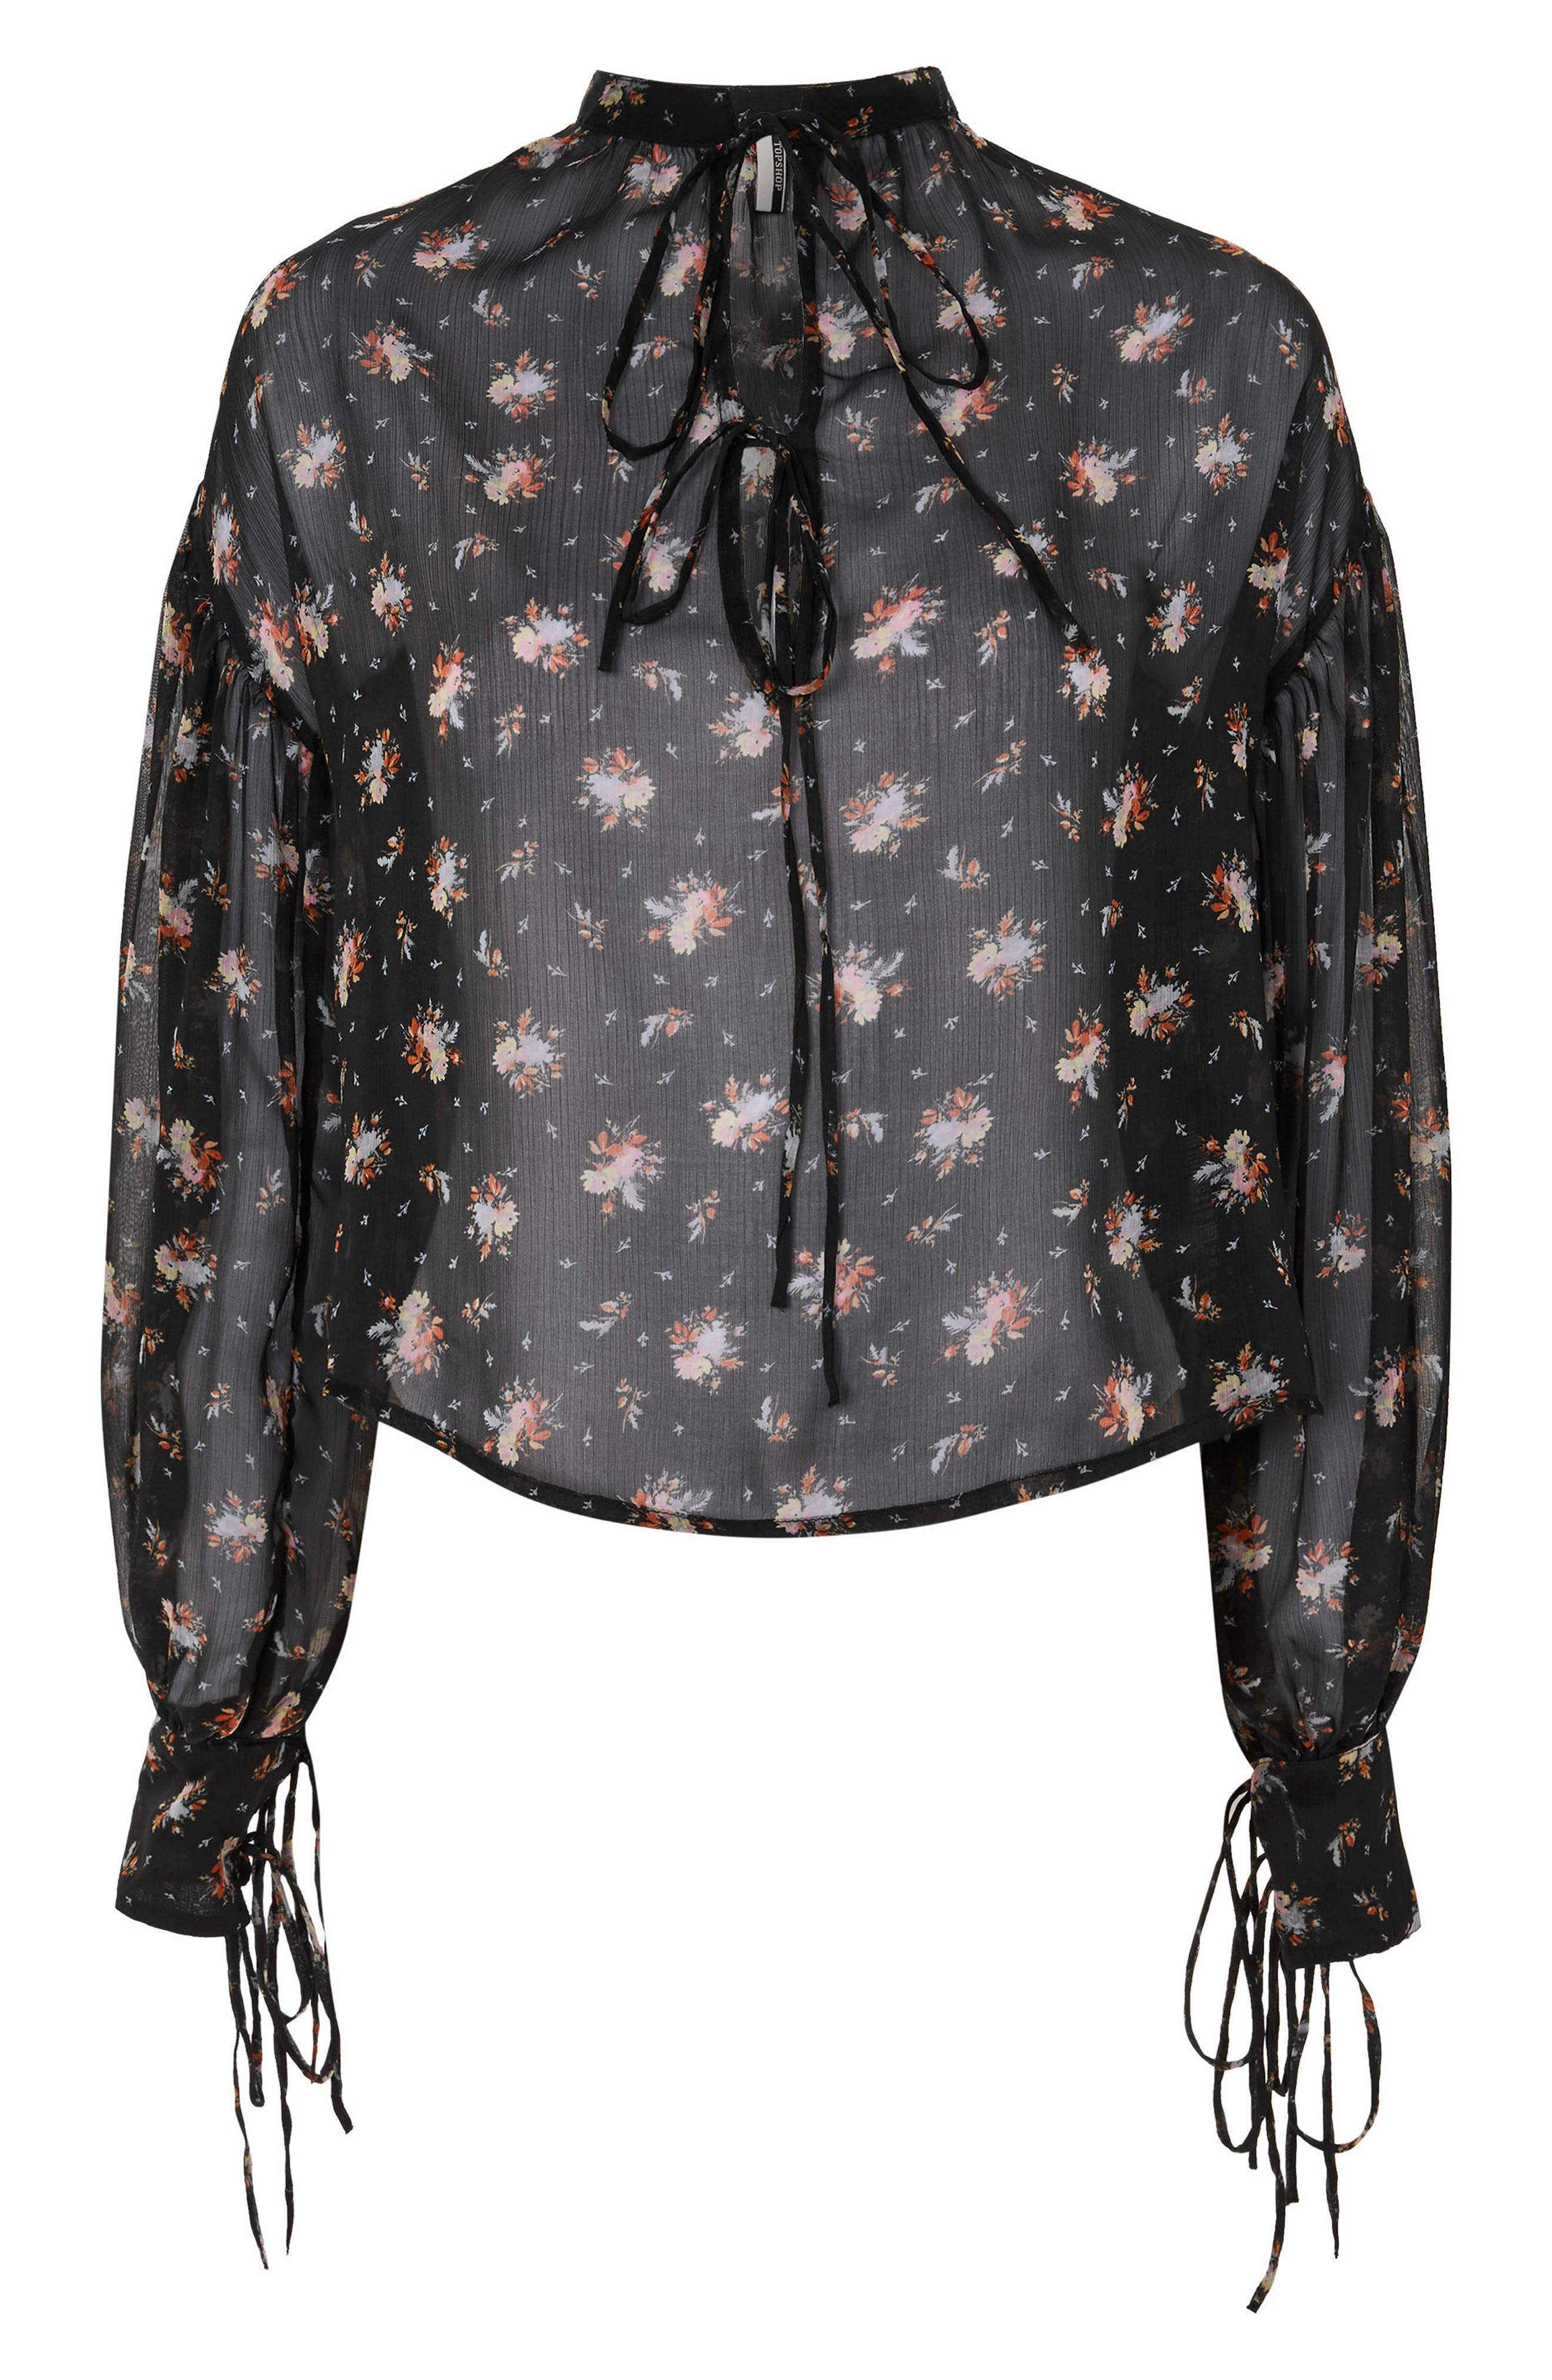 Gypsy Floral Sheer Blouse,                             Alternate thumbnail 3, color,                             001